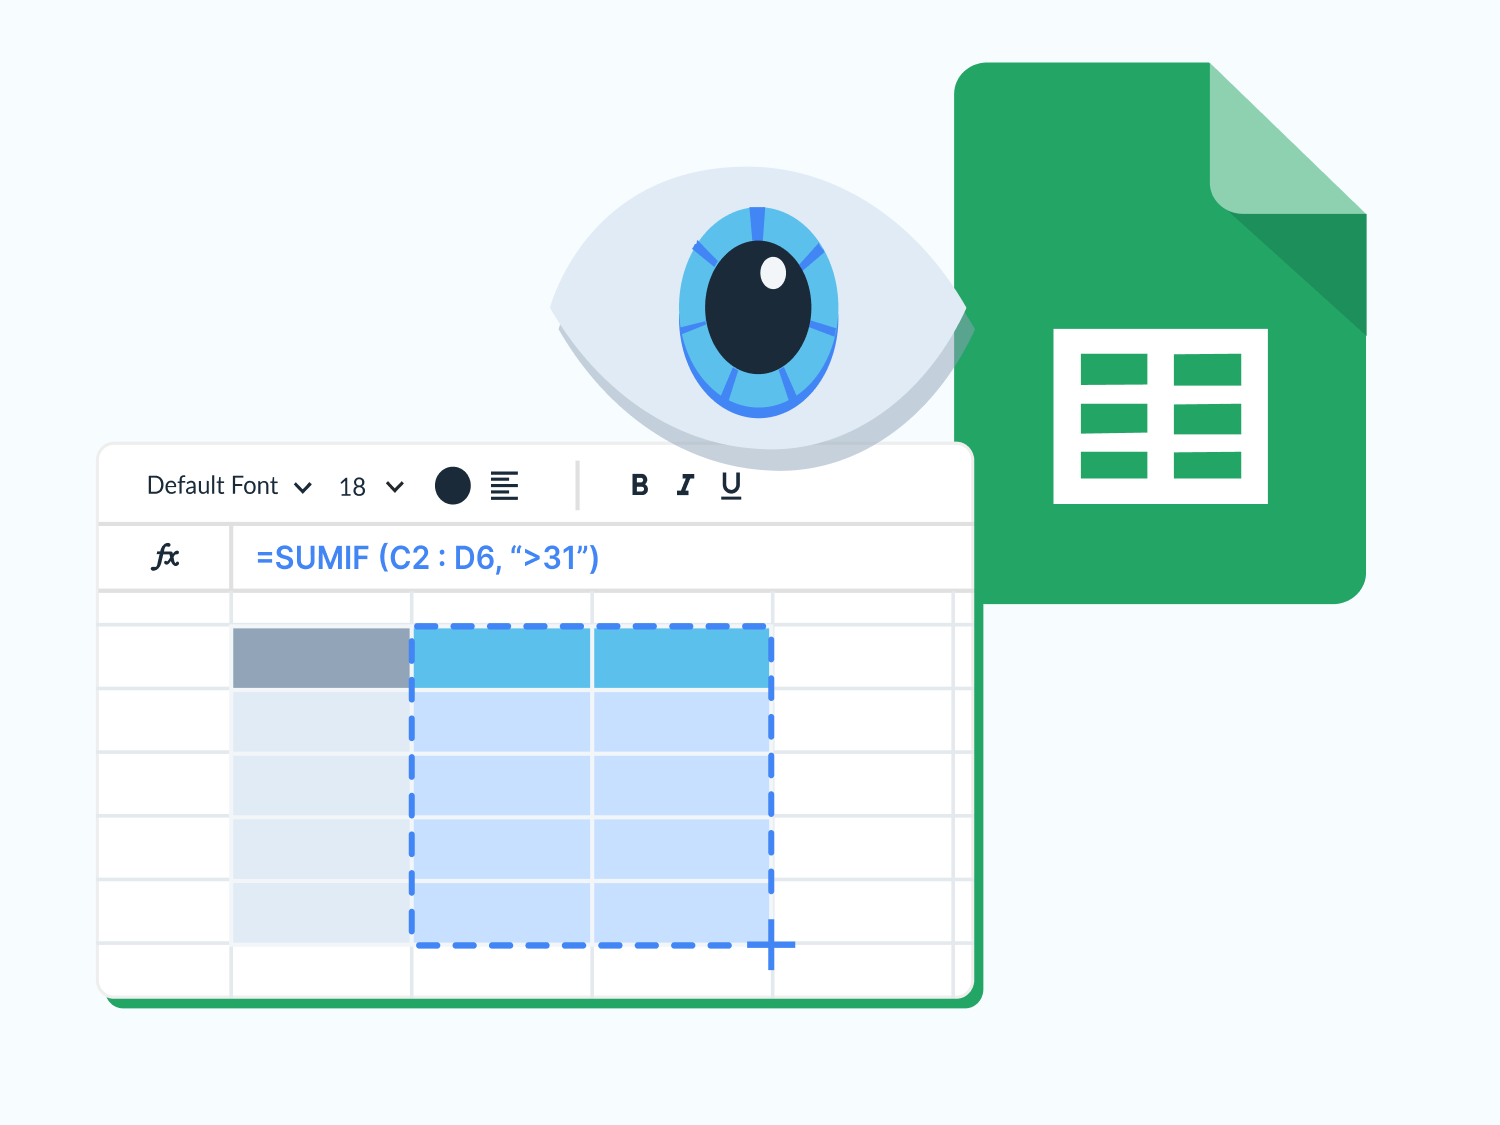 Layered image of a Google Sheet with an eye to resemble viewing.